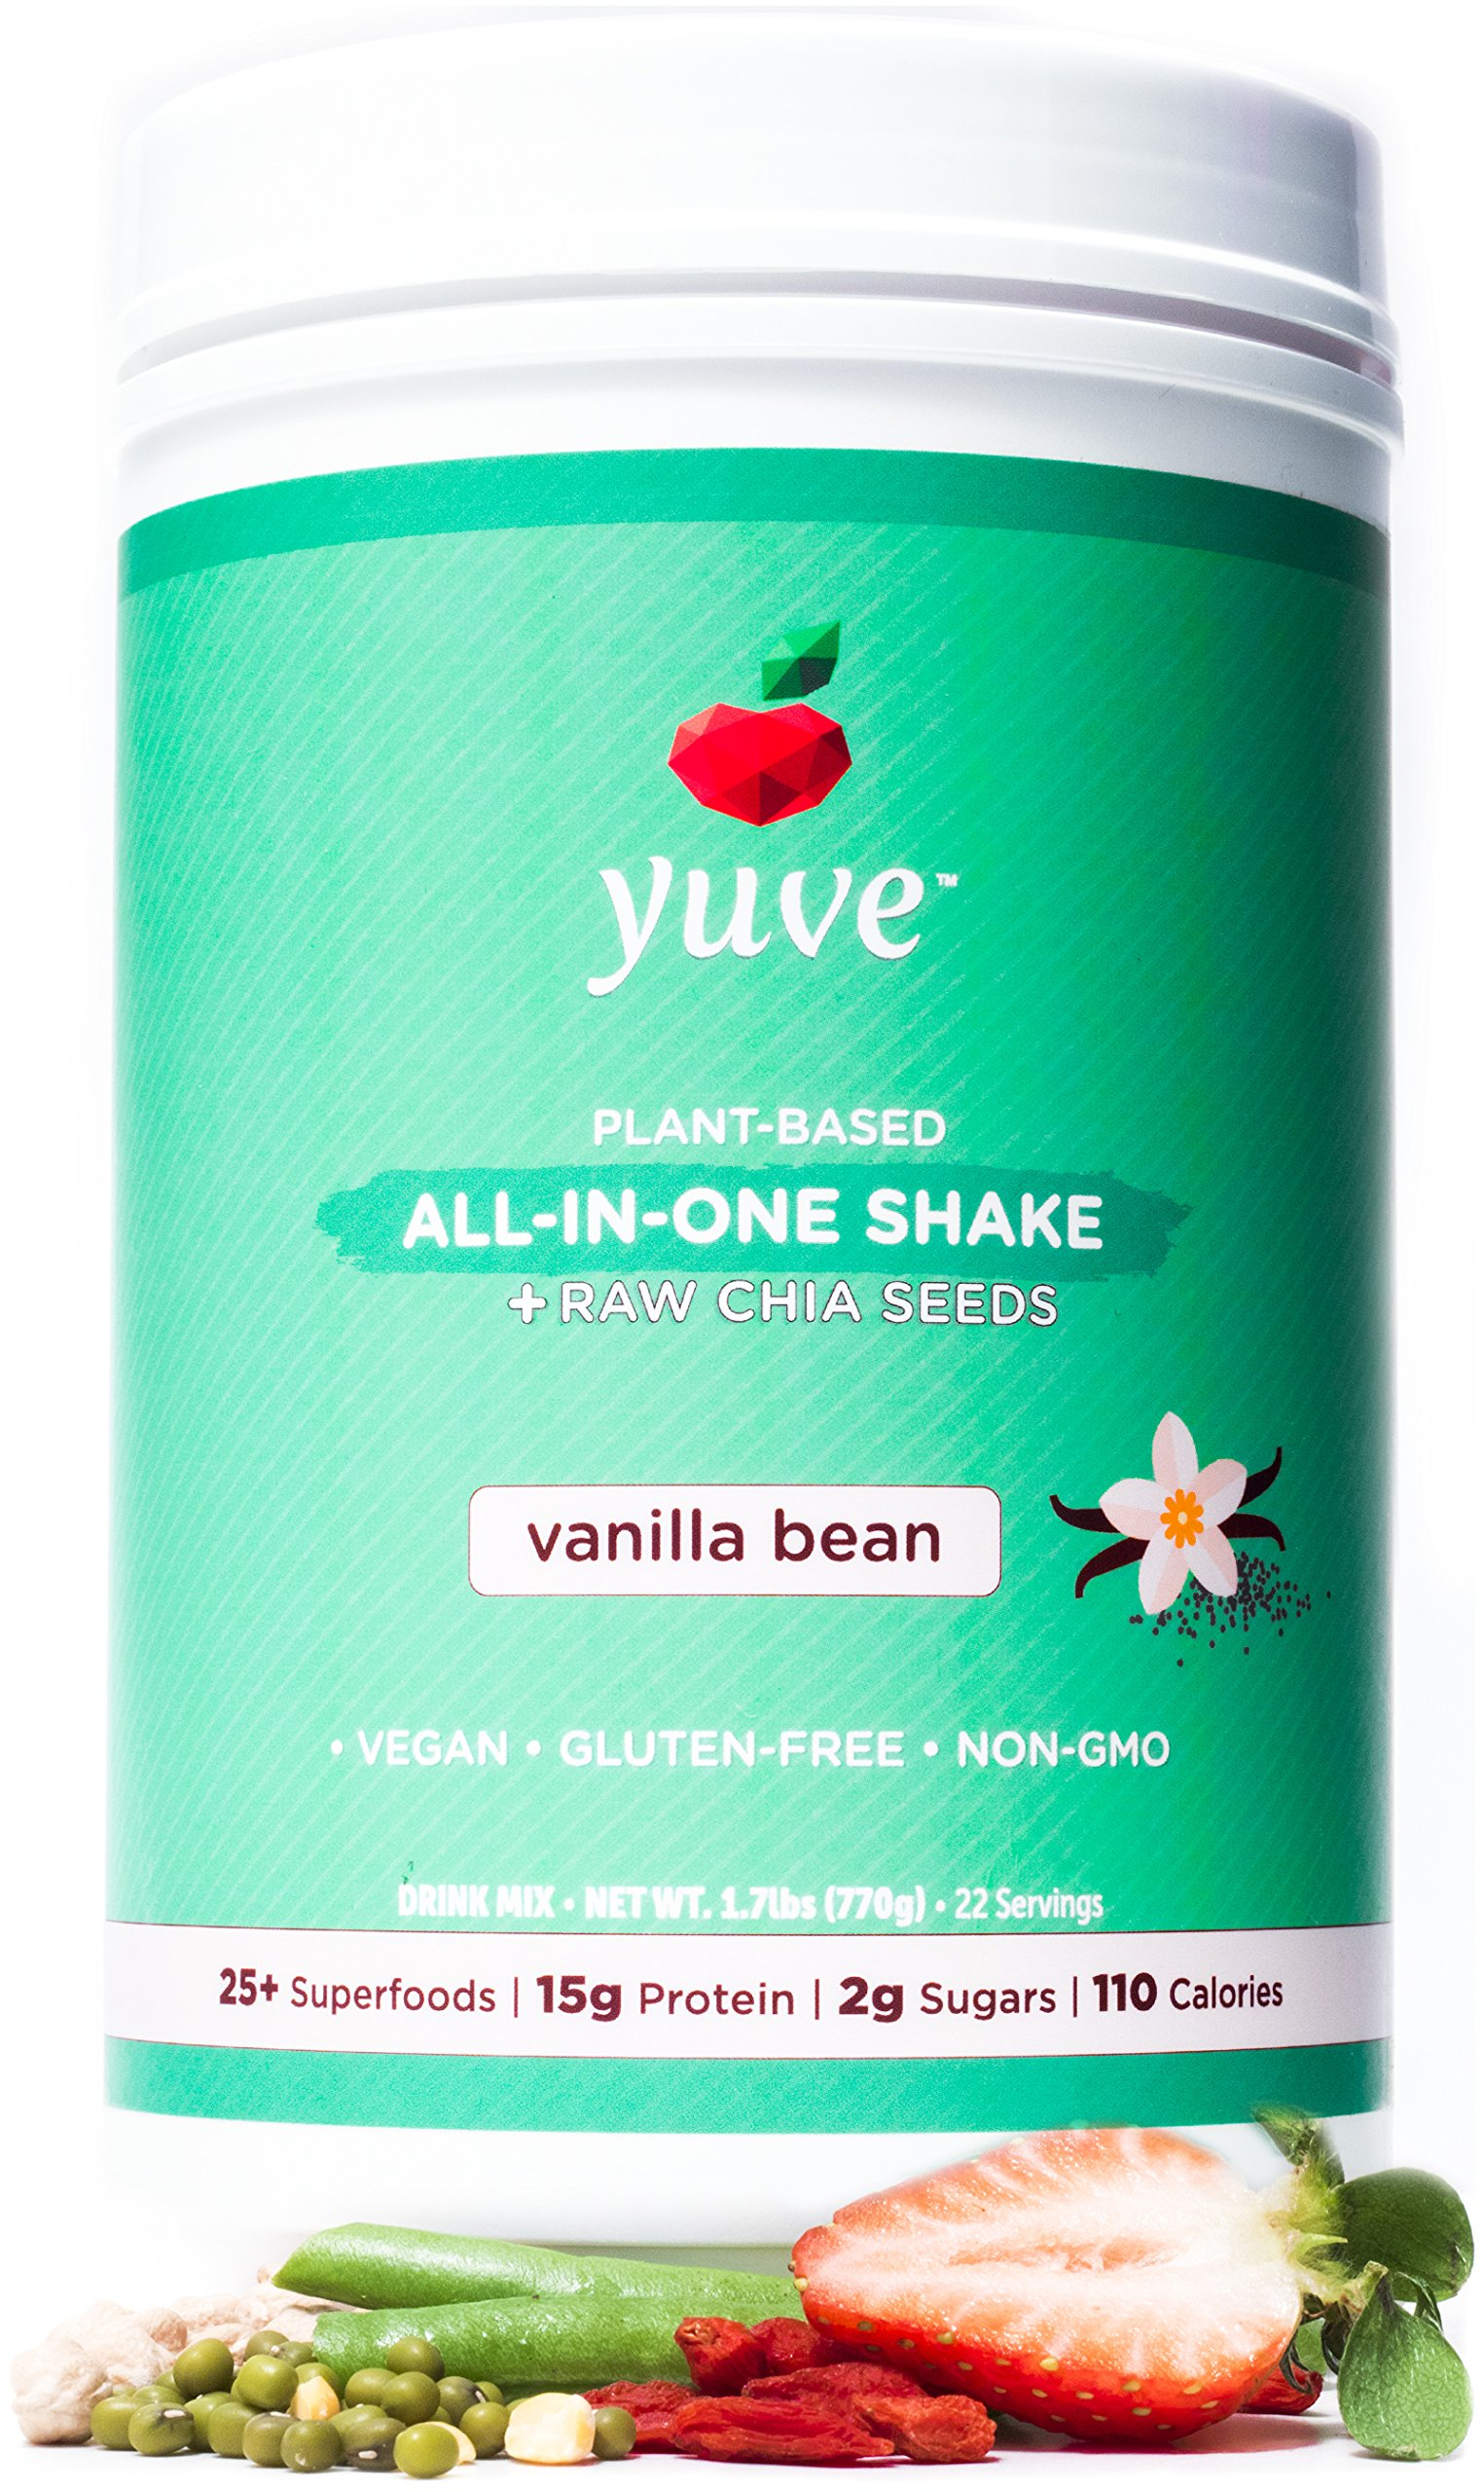 Yuve Vegan Protein Powder with Superfoods - Award Winning Taste - Complete Nutritional Shake - Natural Greens, Plant Based, Non-GMO, Gluten, Dairy, Soy and Lactose Free - Large Tub (Vanilla) by Yuve